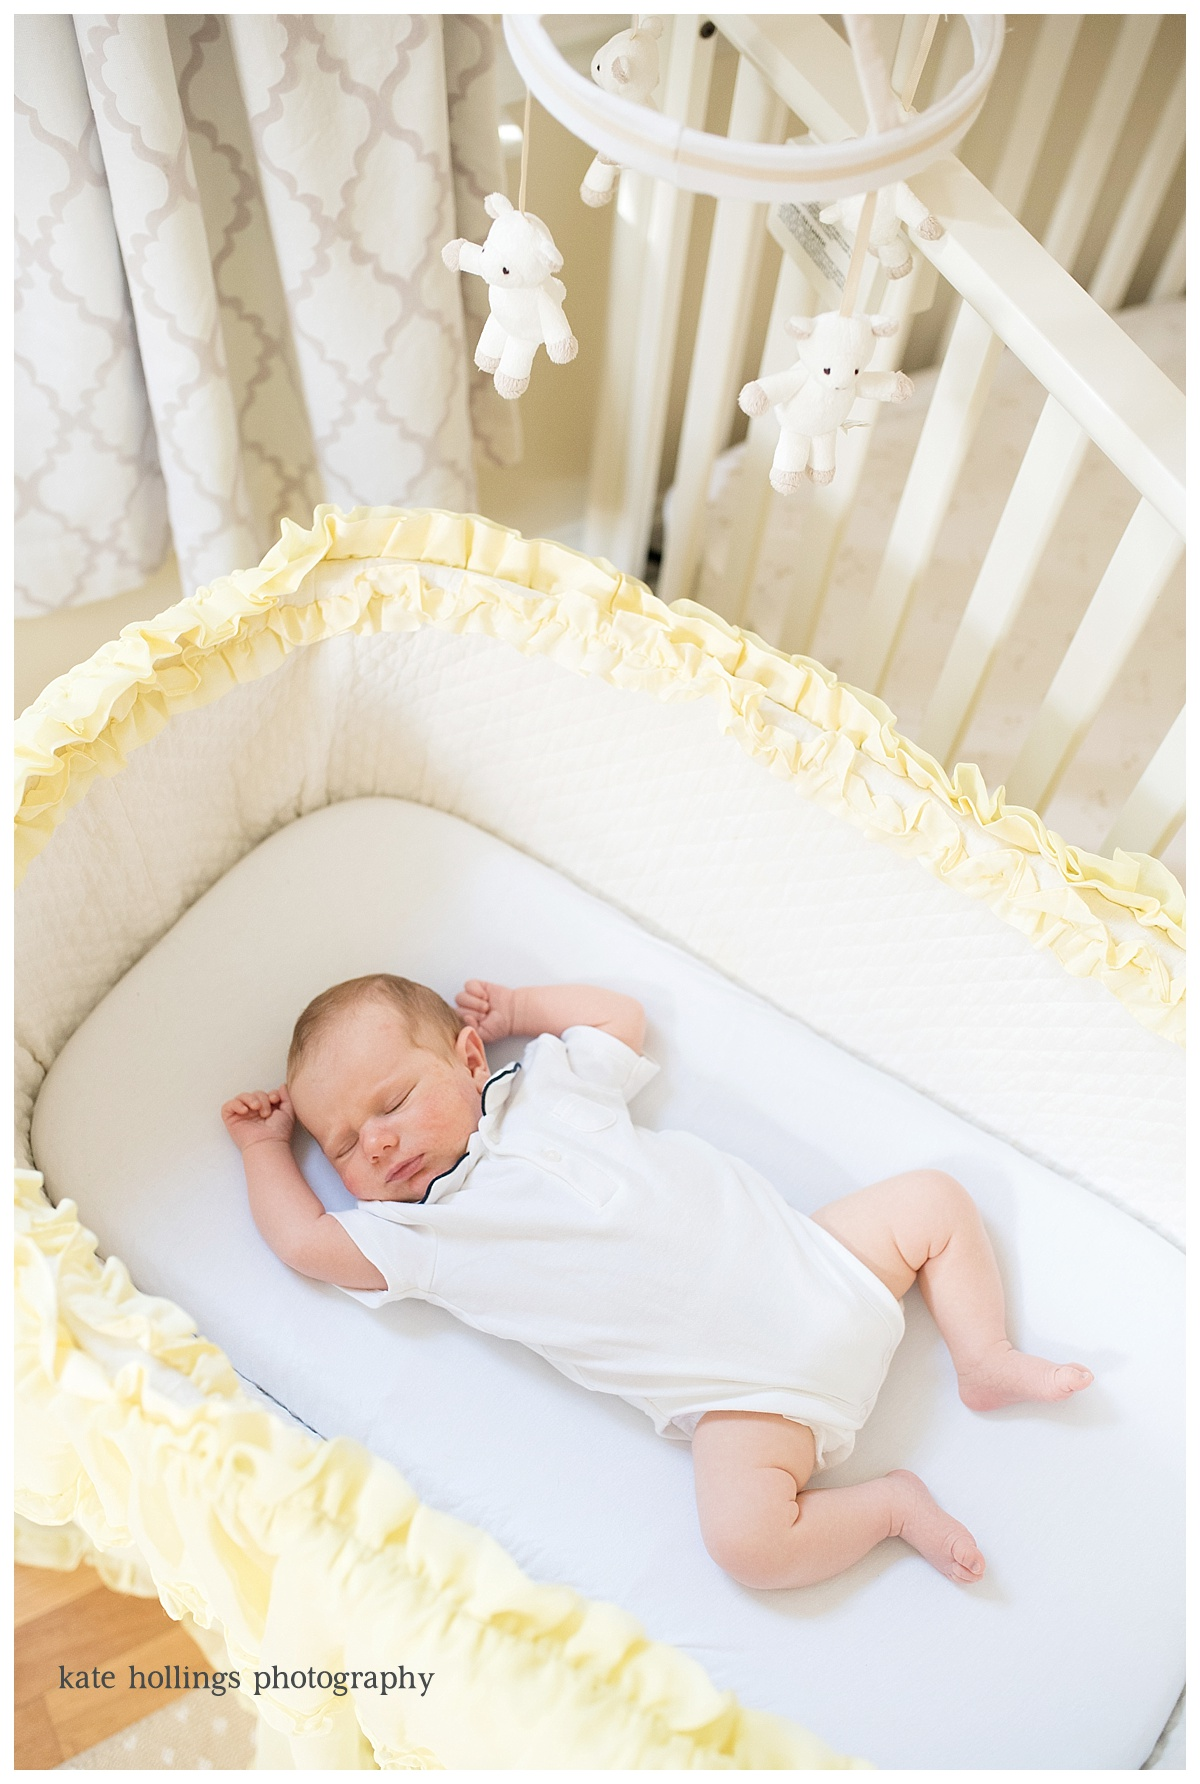 Baby Boy D. in Family Bassinet